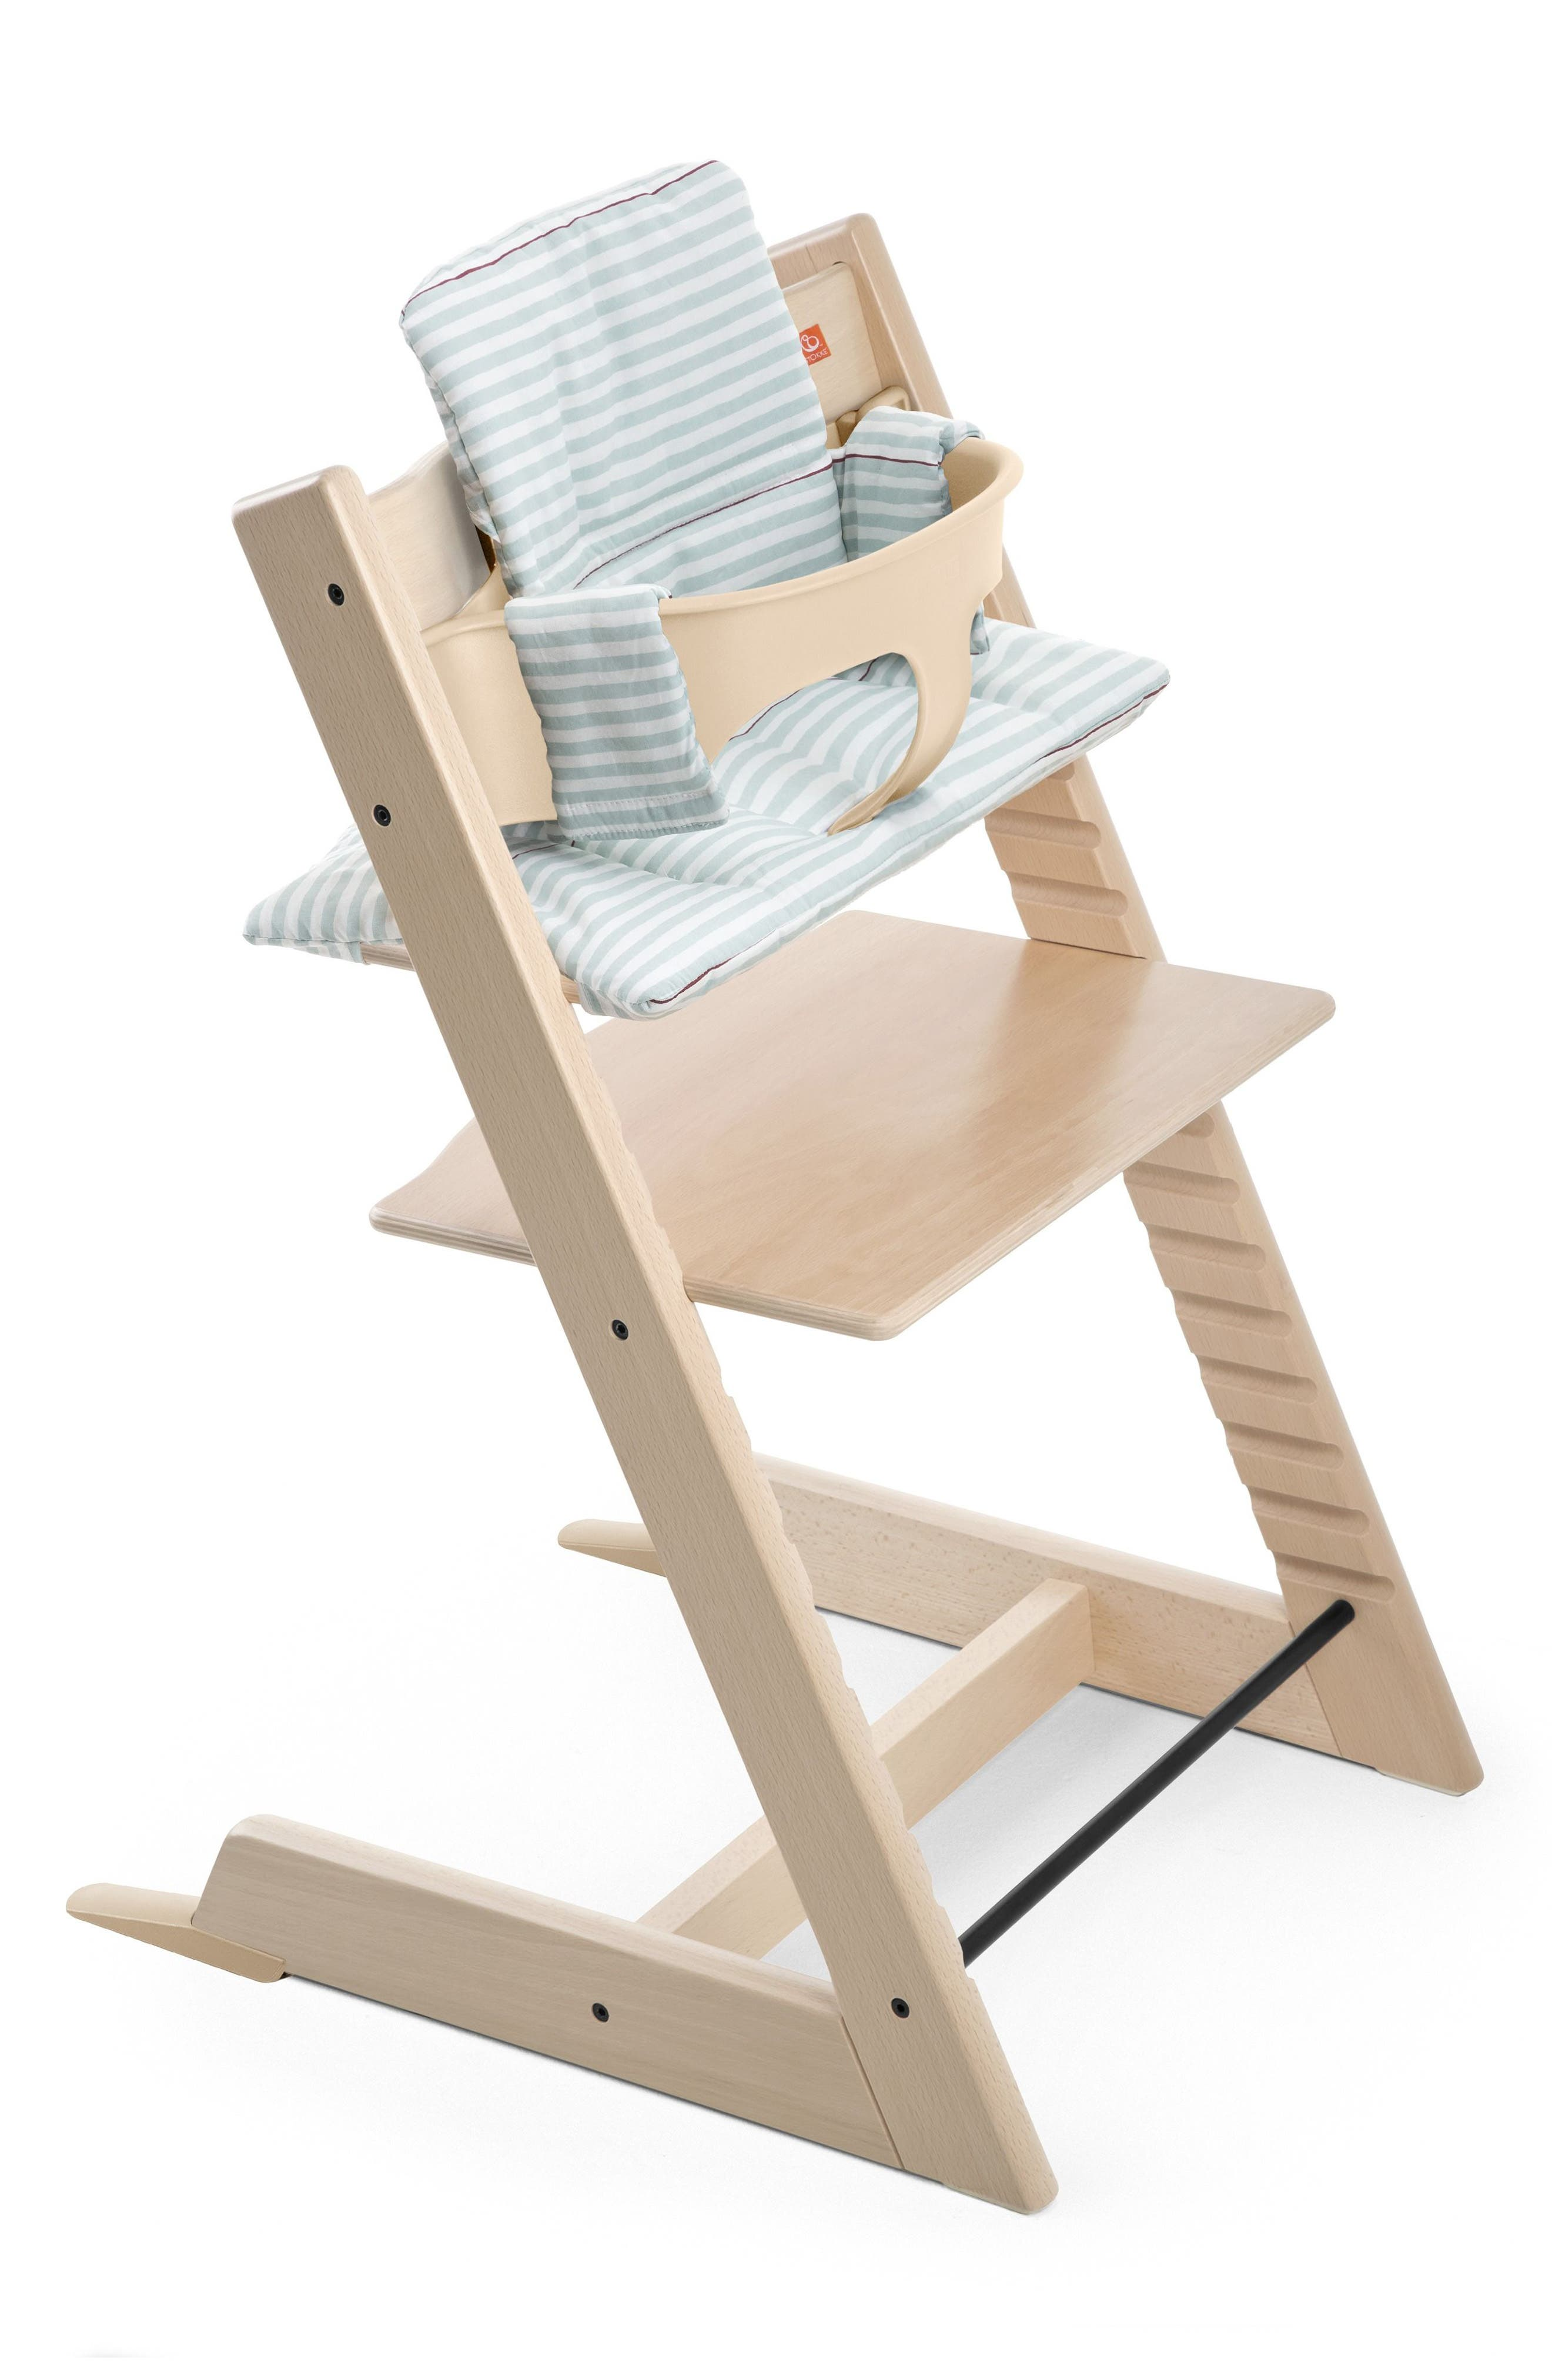 Stokke 'Tripp Trapp® Classic' Seat Cushions